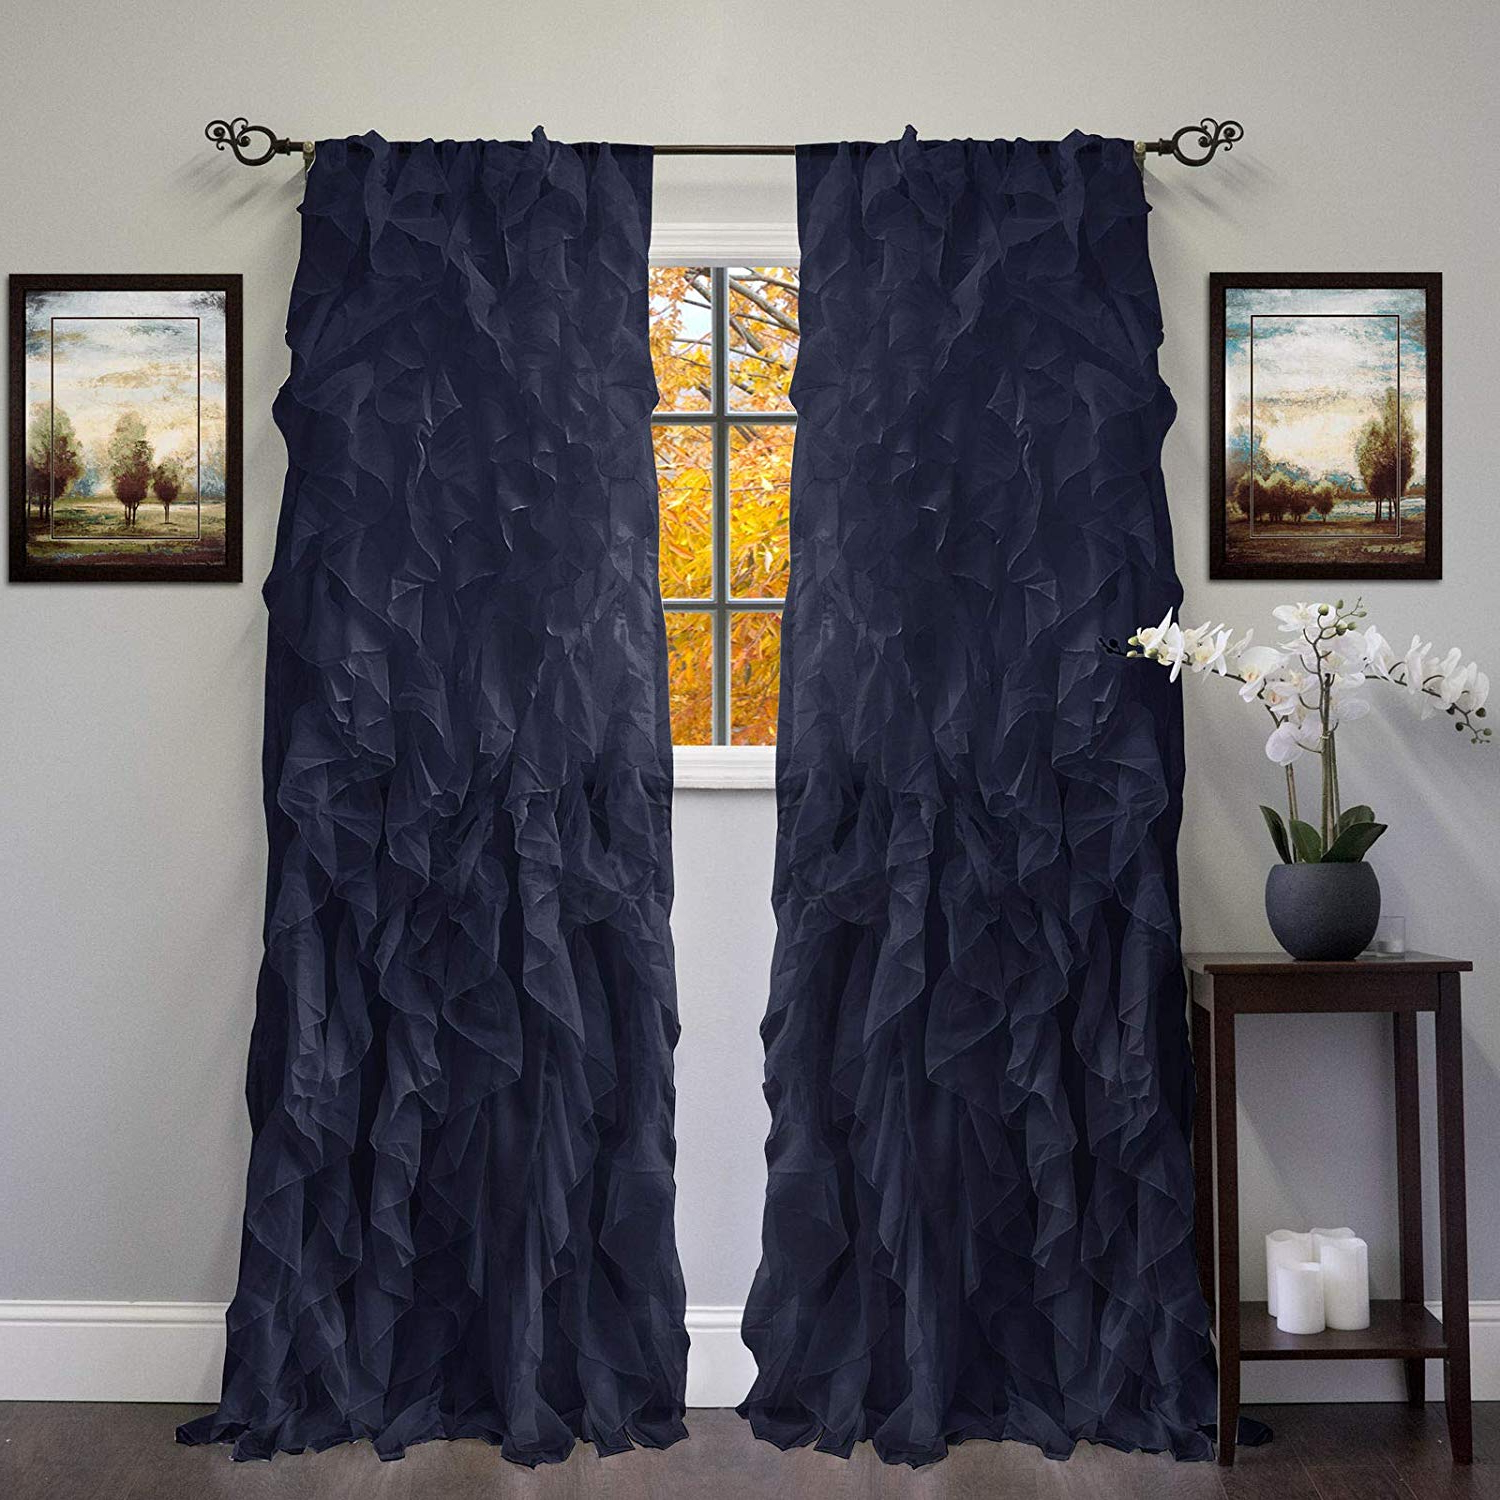 Well Known Chic Sheer Voile Vertical Ruffled Window Curtain Tiers Regarding Amazon: Dn Lin New Chic Sheer Voile Vertical Ruffled (View 3 of 20)